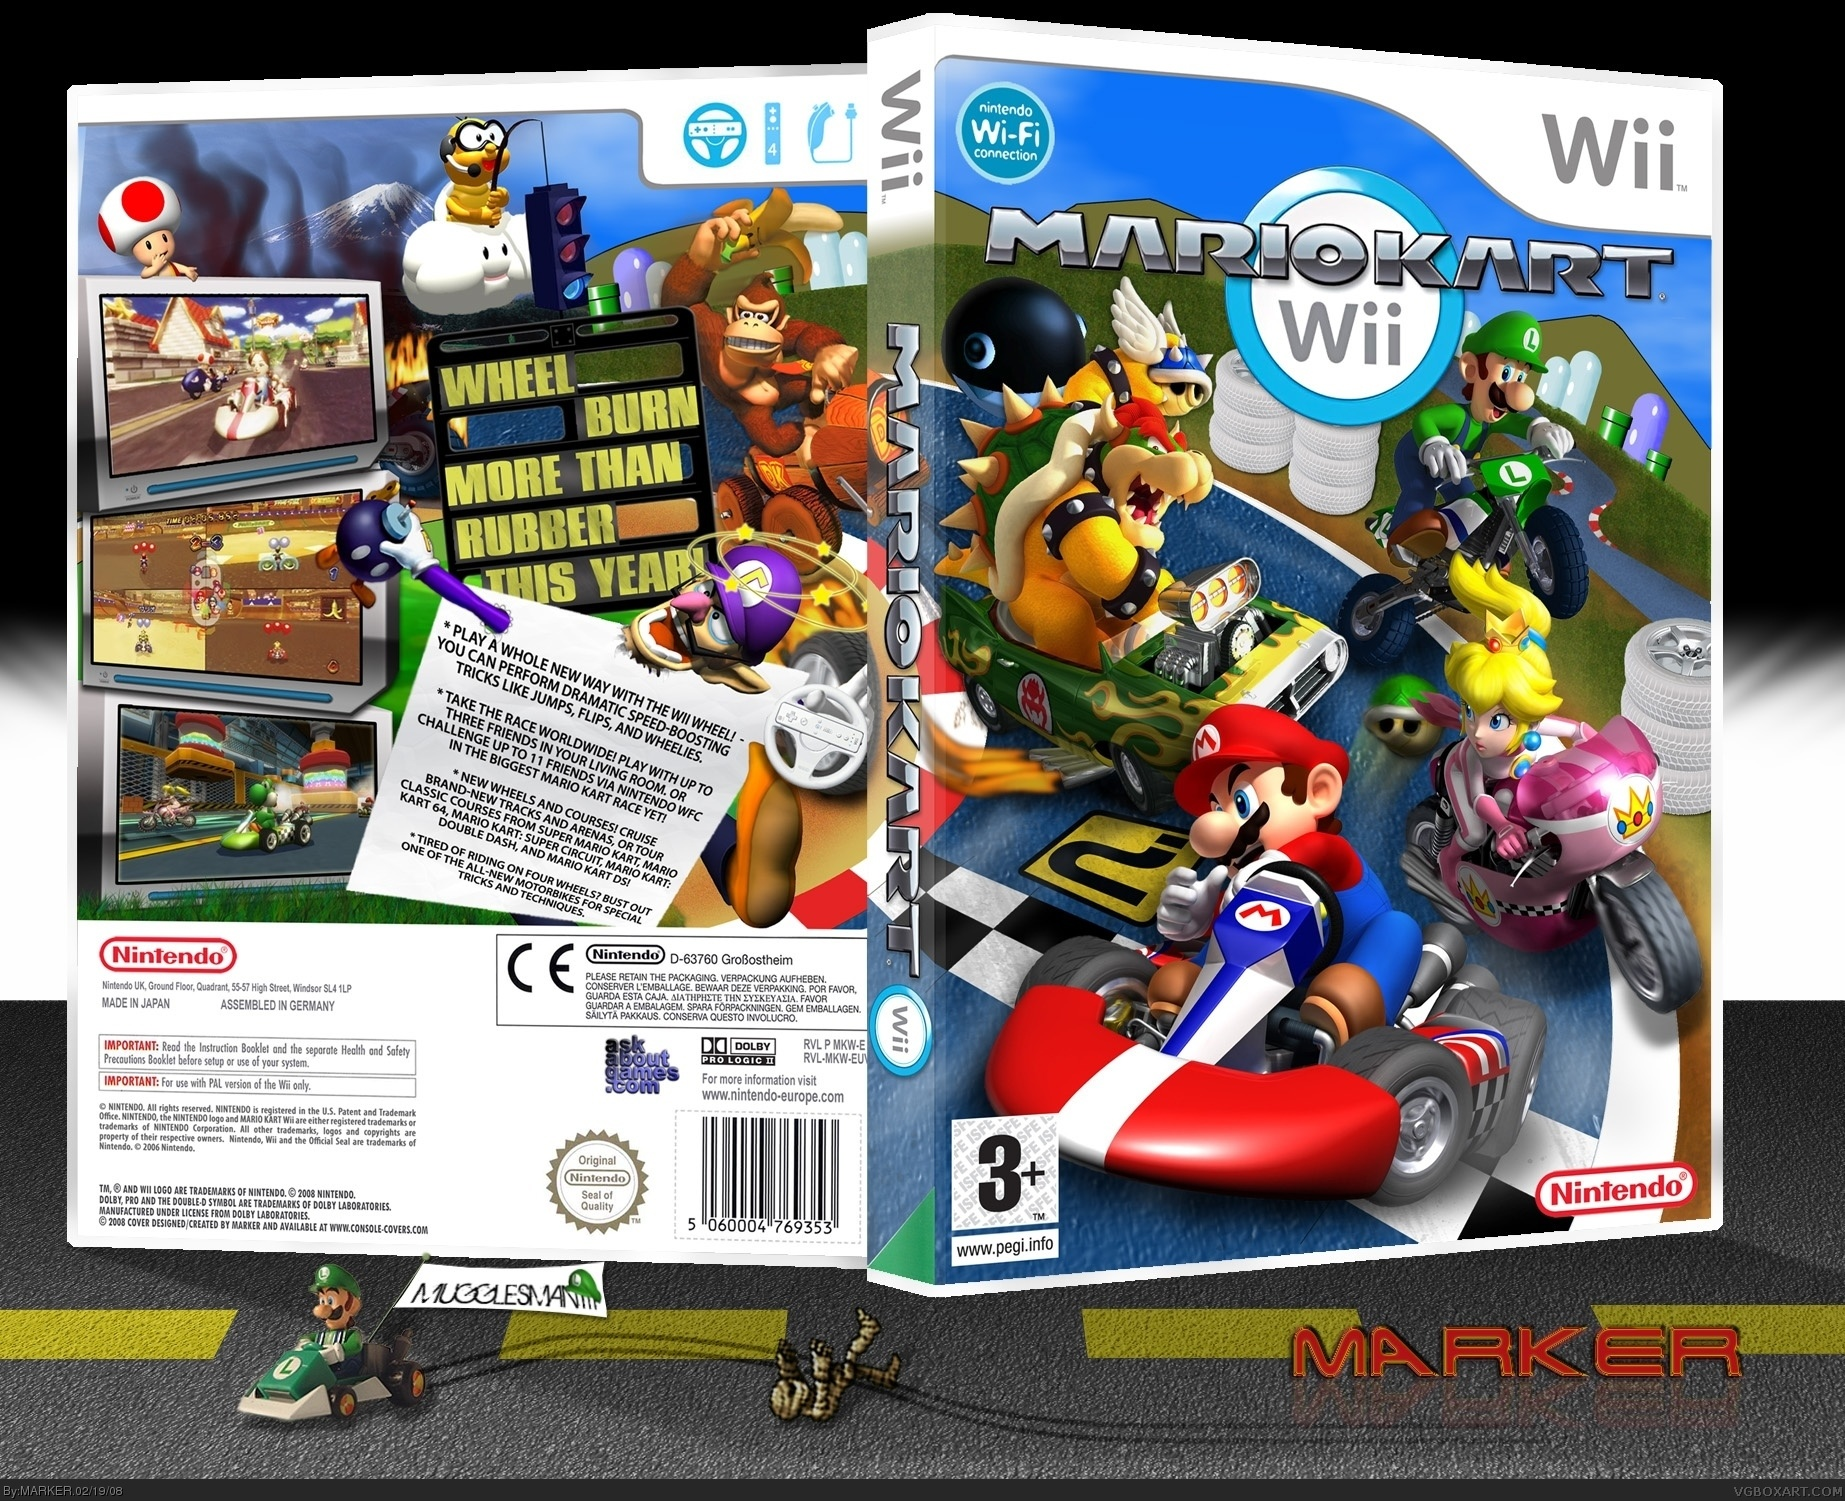 Mario Kart Wii Wii Box Art Cover By Marker